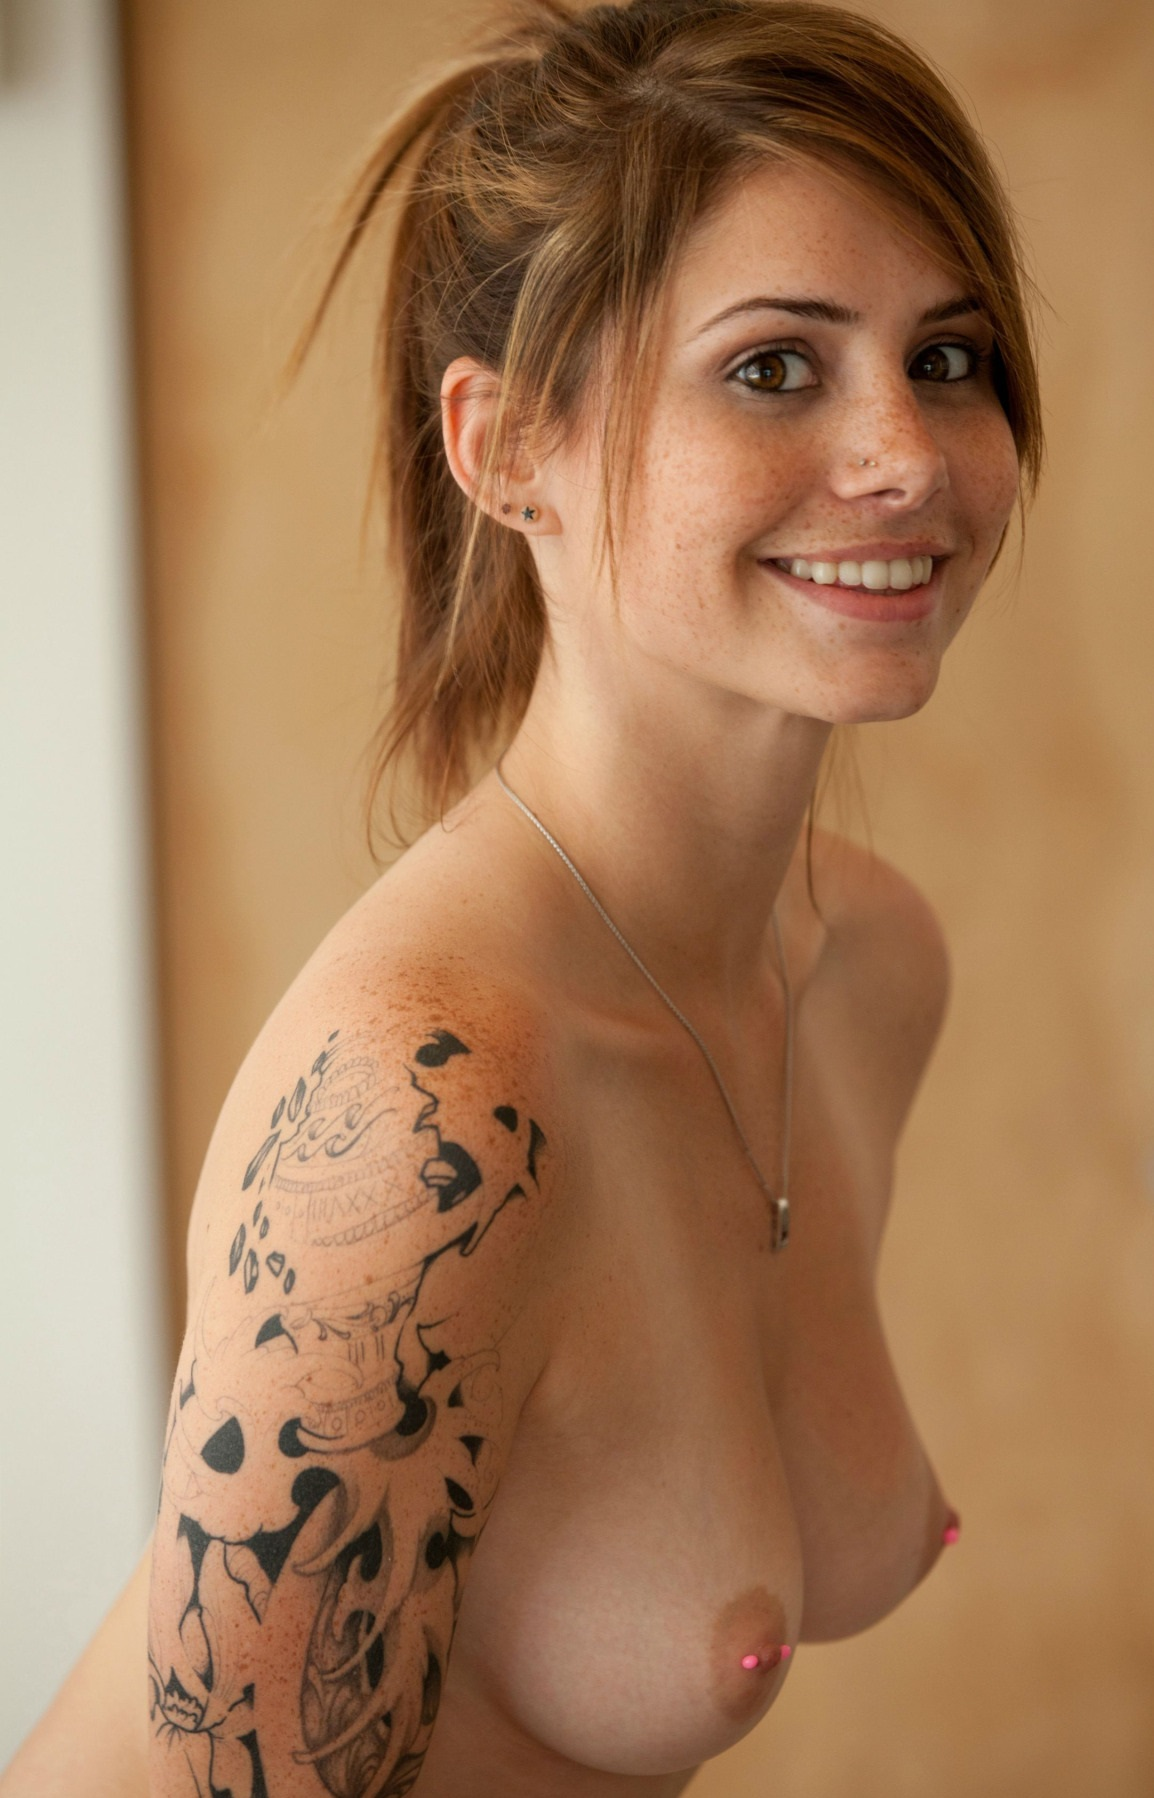 Recommend you Pornstars with tattoos naked remarkable, very